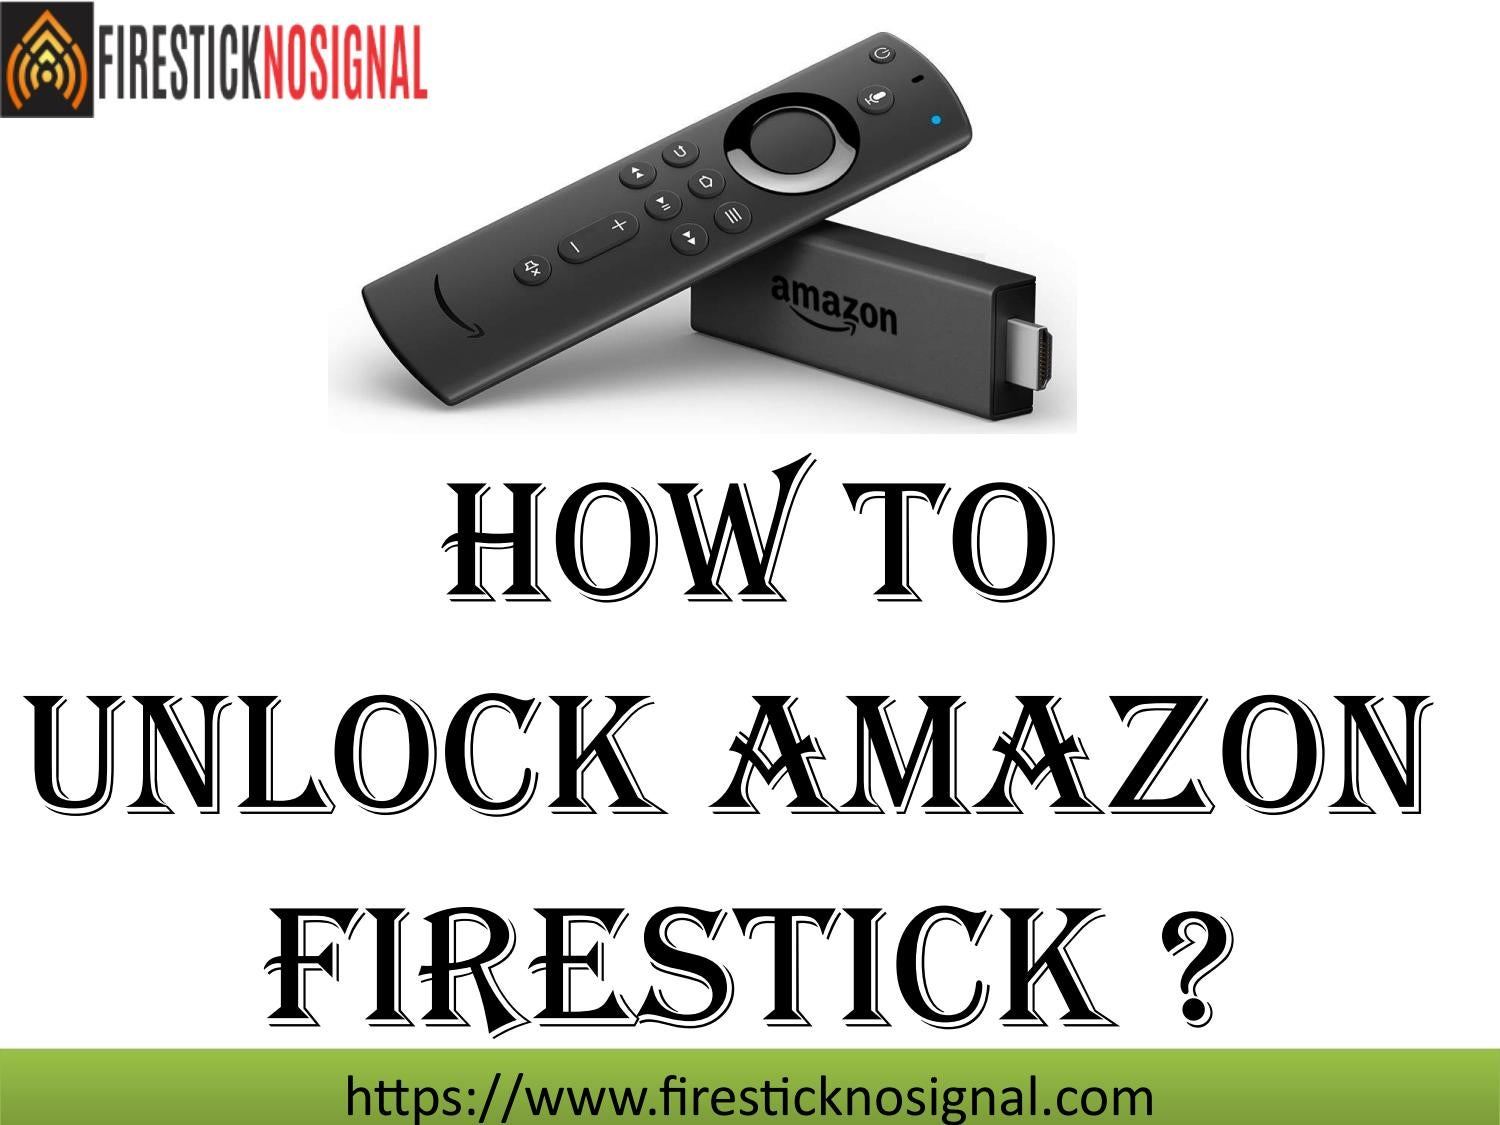 How to unlock fire stick? Firestick customer Support by